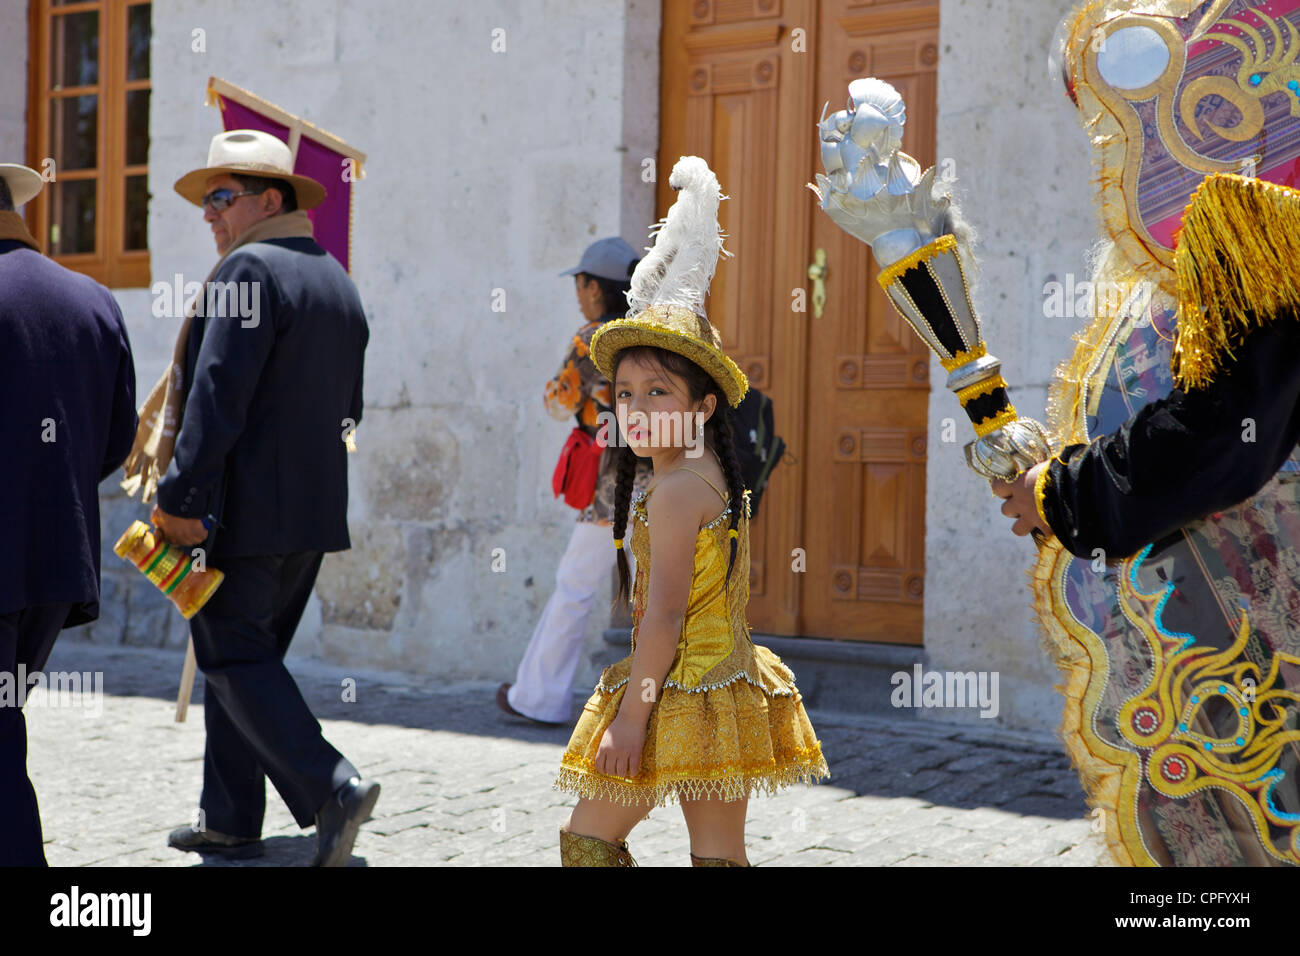 Wedding procession with traditionally dressed Peruvians, Arequipa, Peru - Stock Image